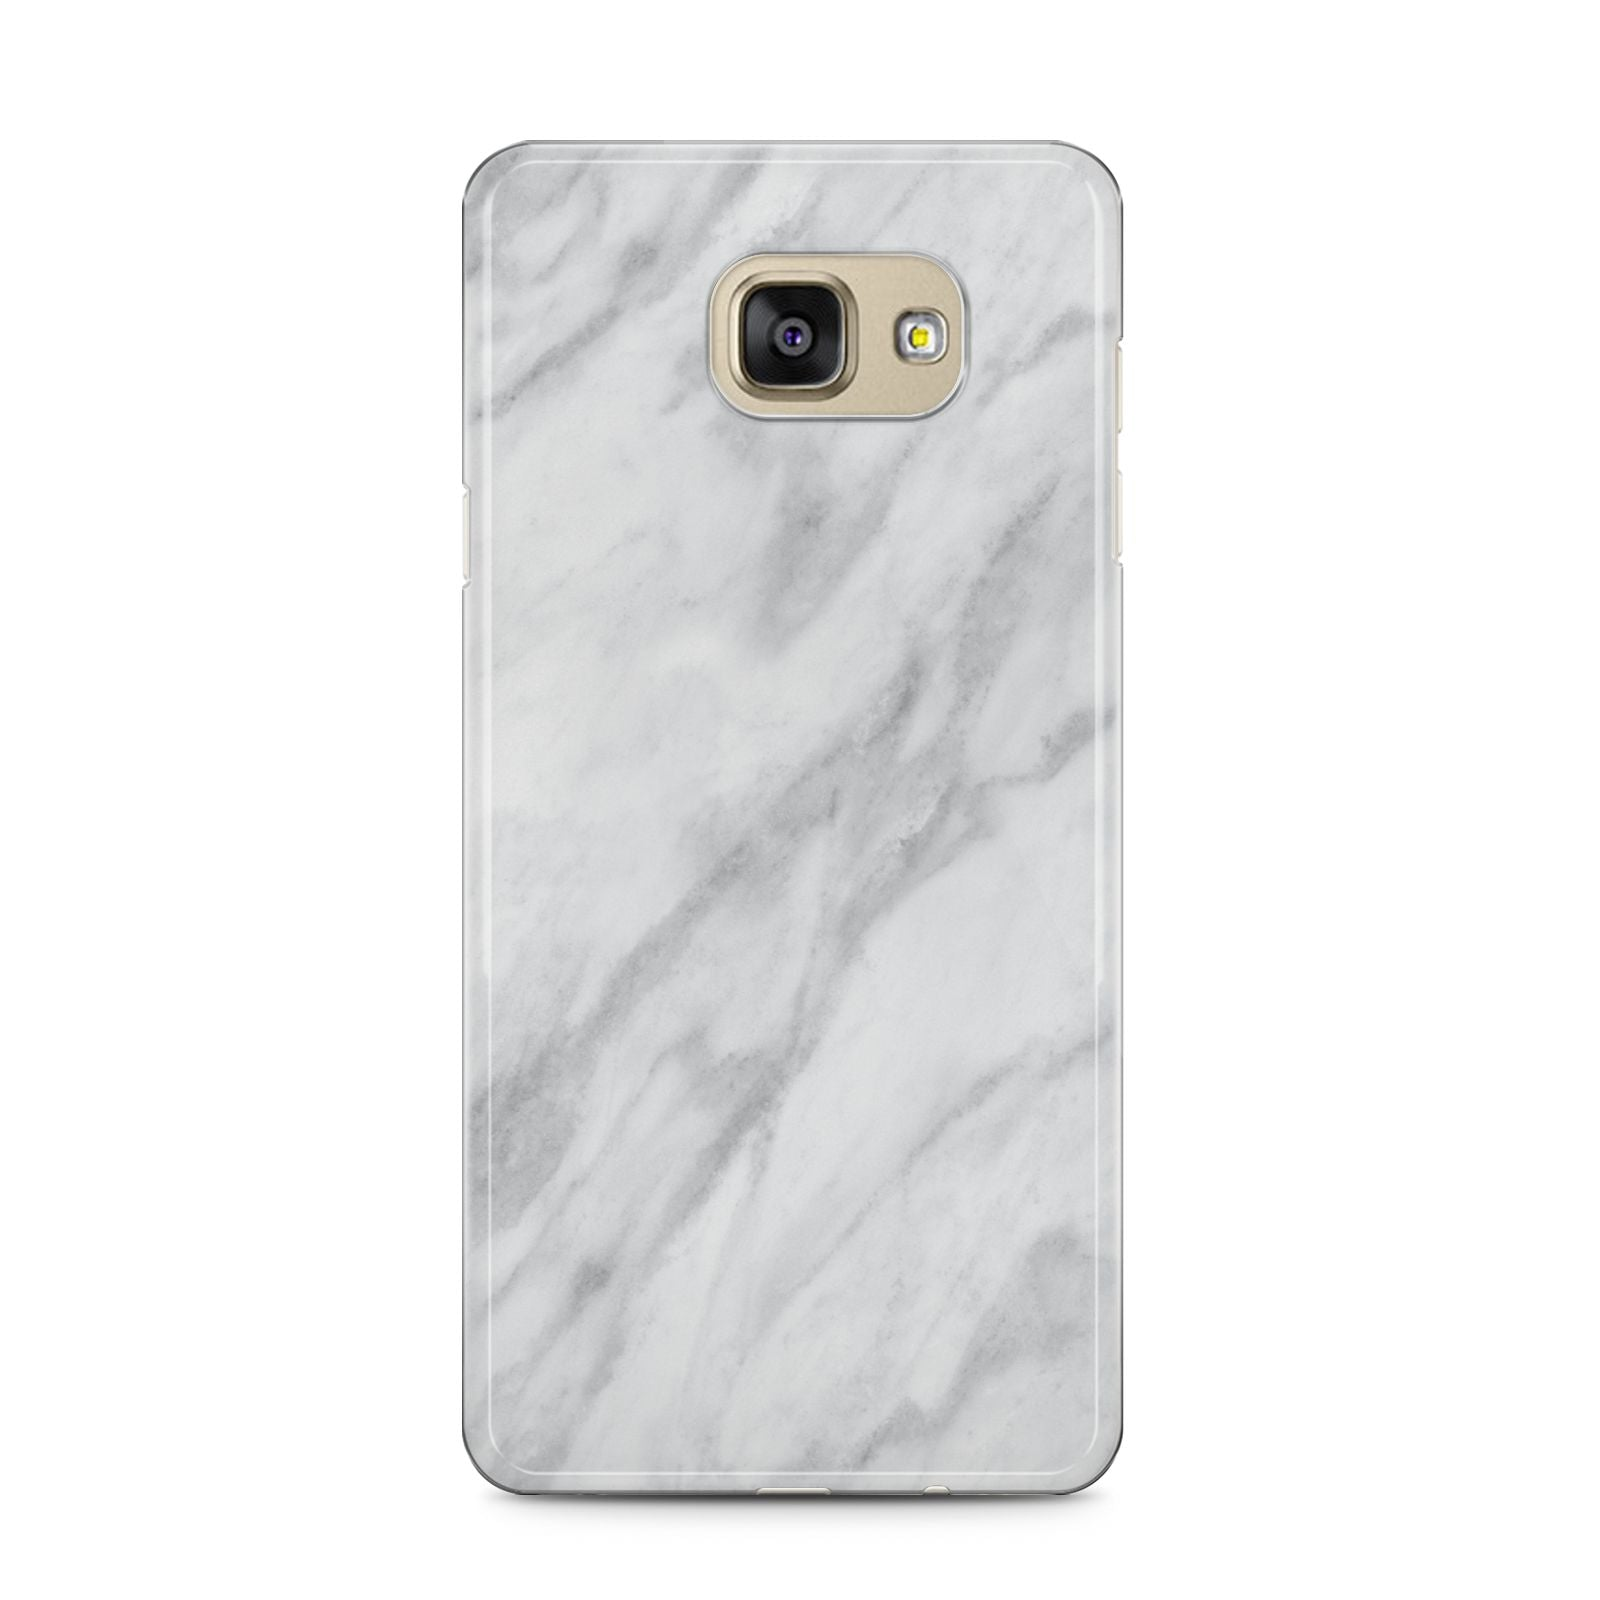 Faux Marble Effect Italian Samsung Galaxy A5 2016 Case on gold phone